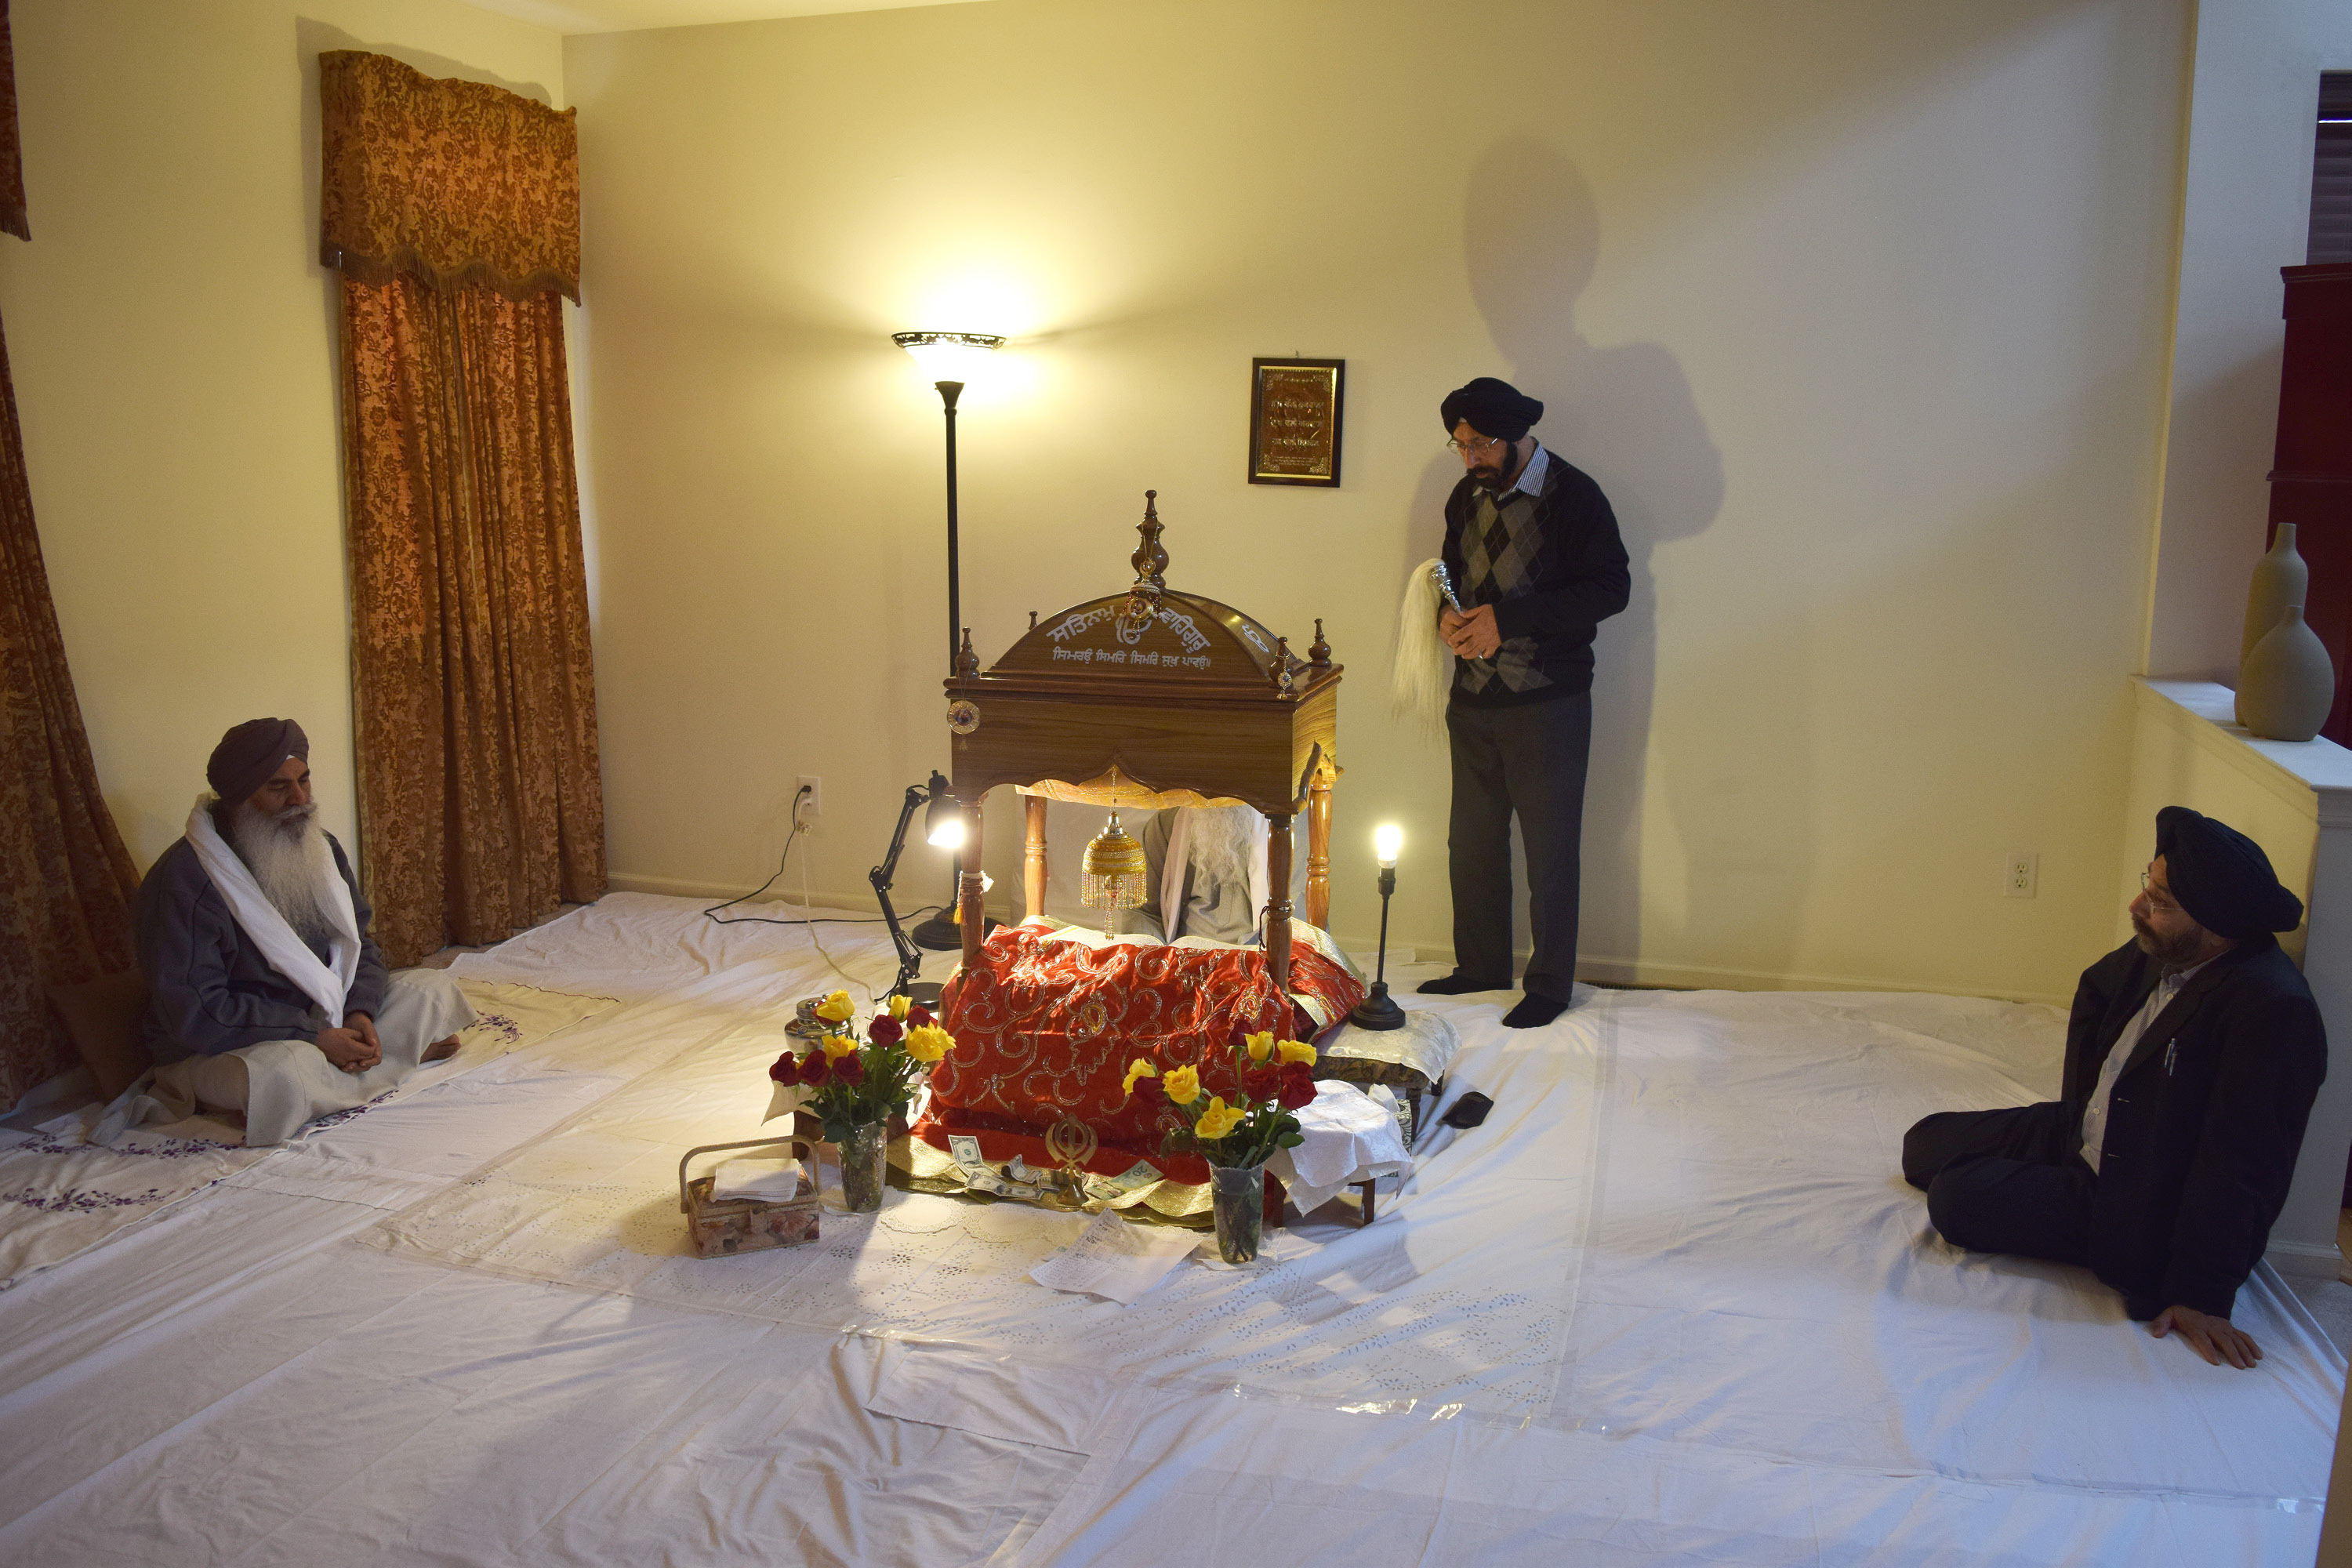 Asian-Americans who practice a religion may translate this practice into their own home by converting a bedroom into a shrine. This photo depicts a part of my home that has been converted in a Sikh prayer room meant for daily prayers and ceremonies.